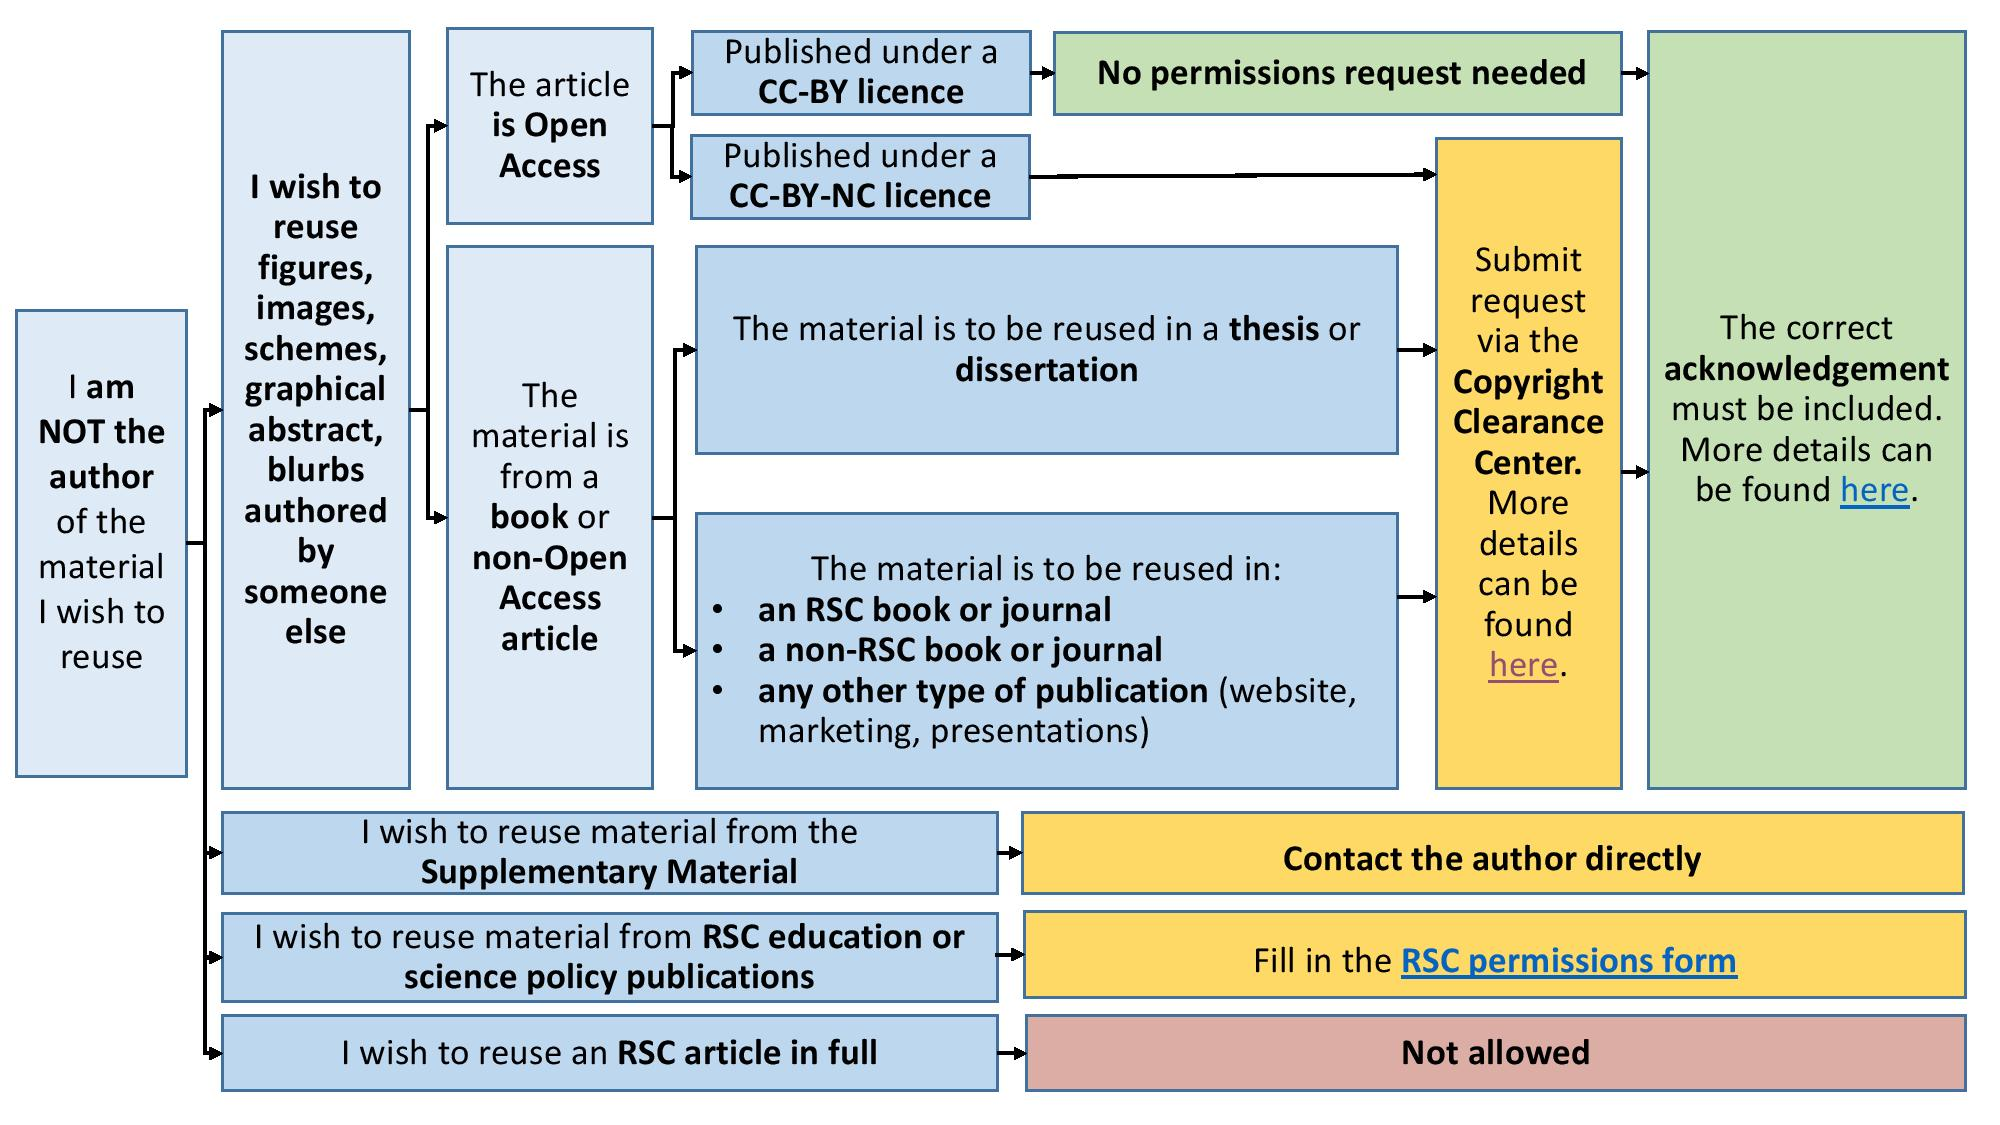 Flowcharts for permissions - I am NOT the author v5-page.jpg